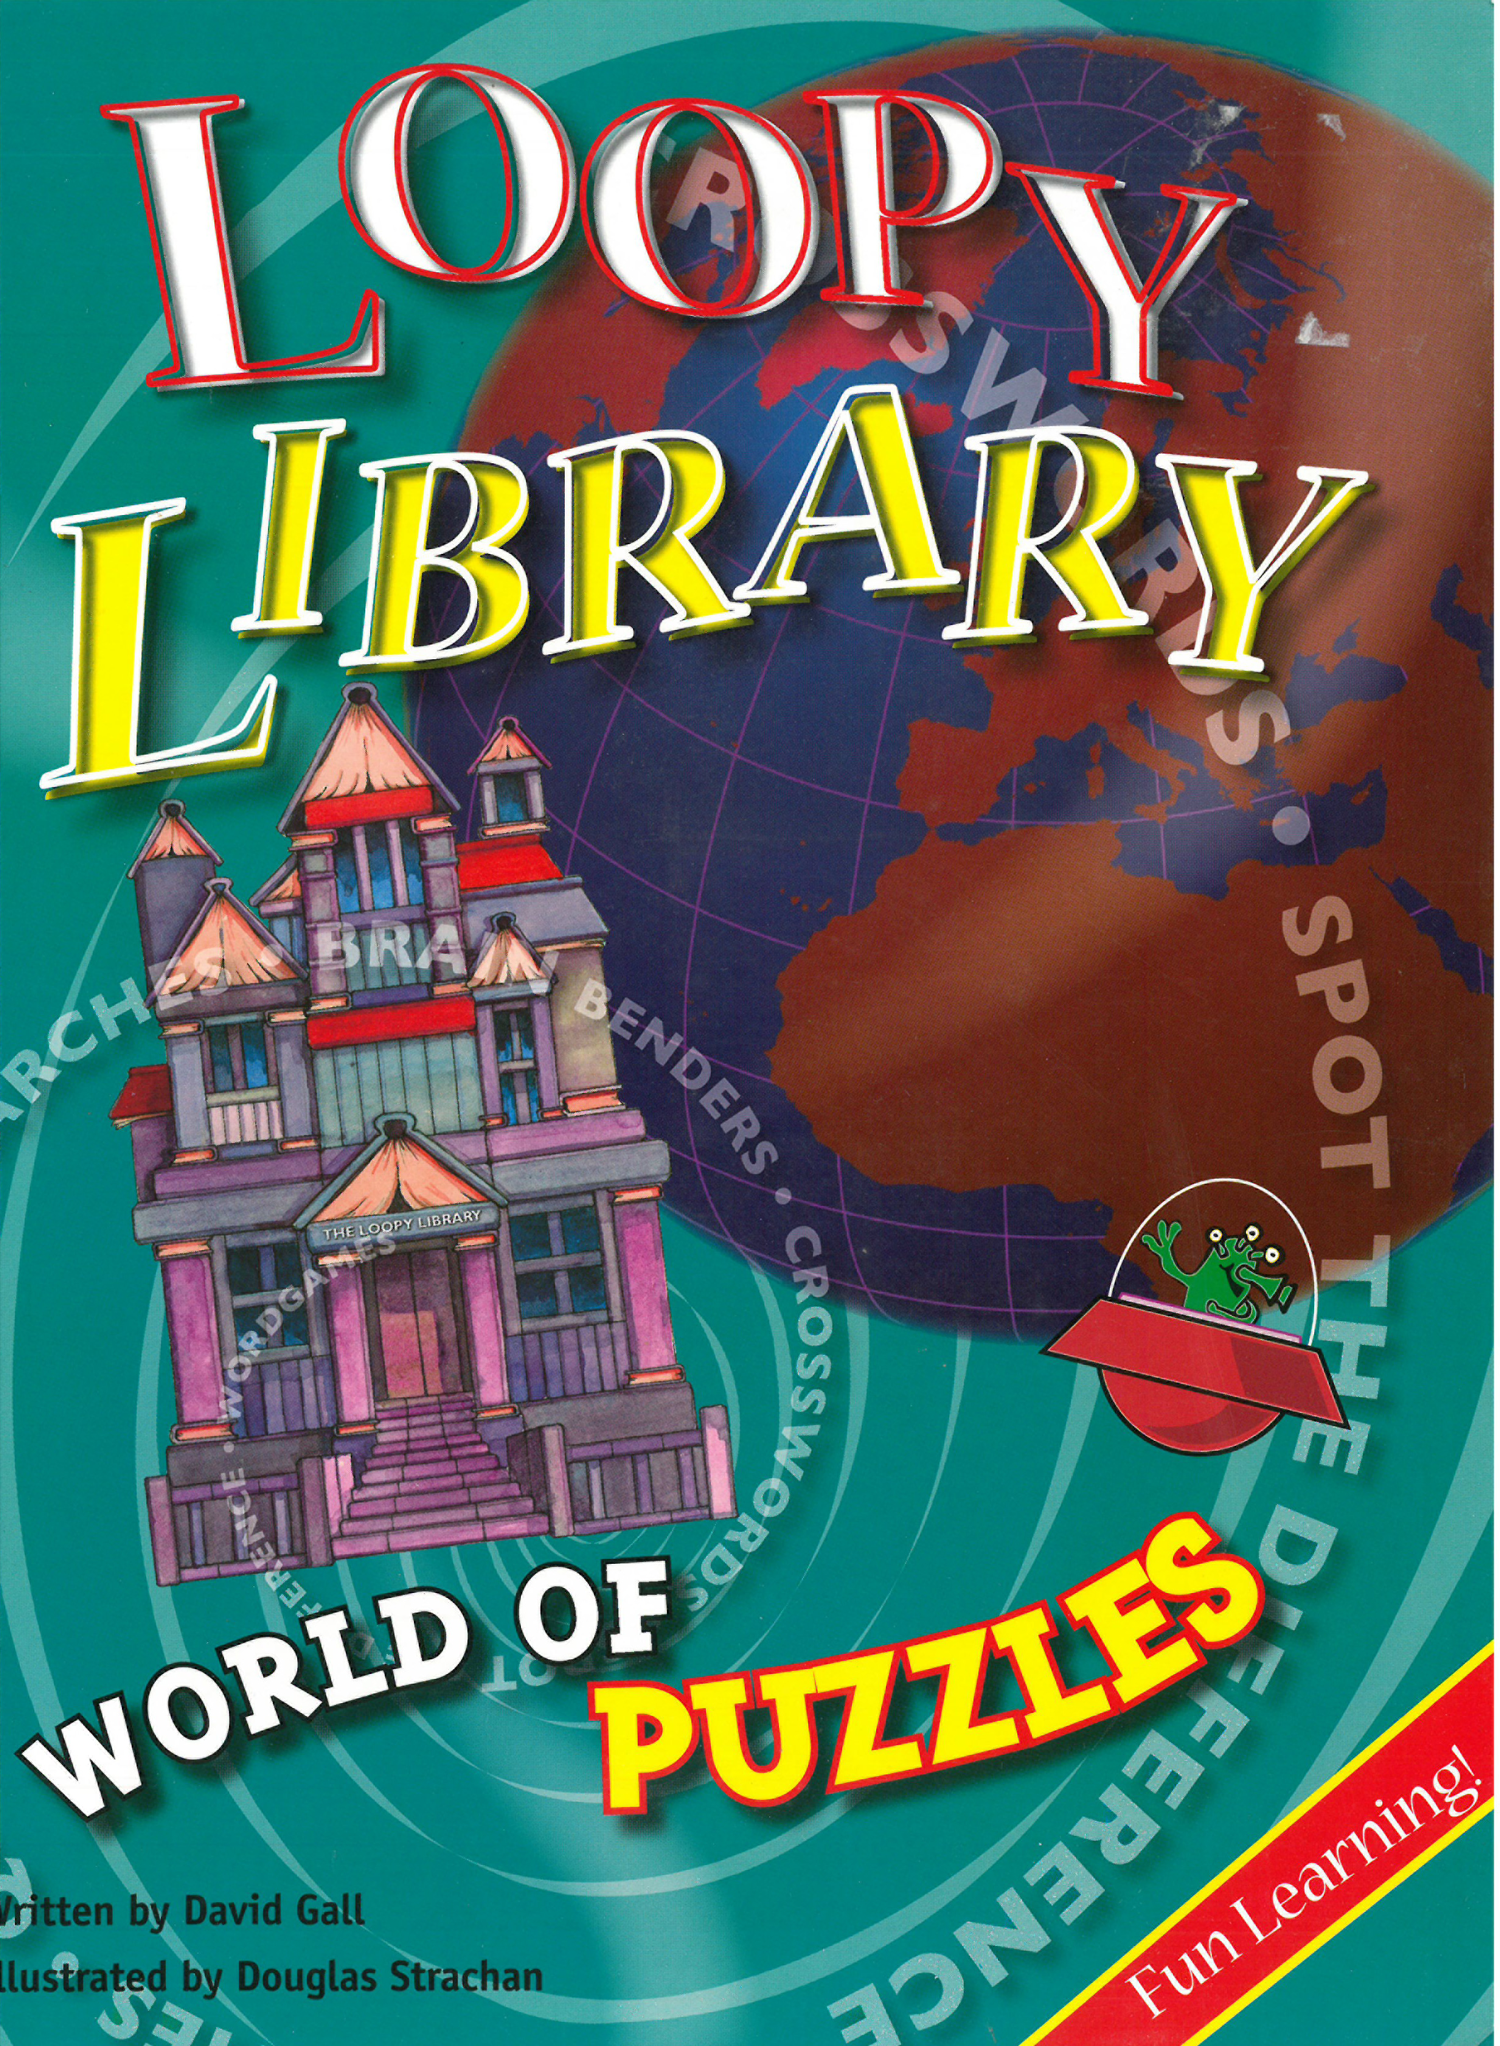 LL-World-of-puzzles-cover.png